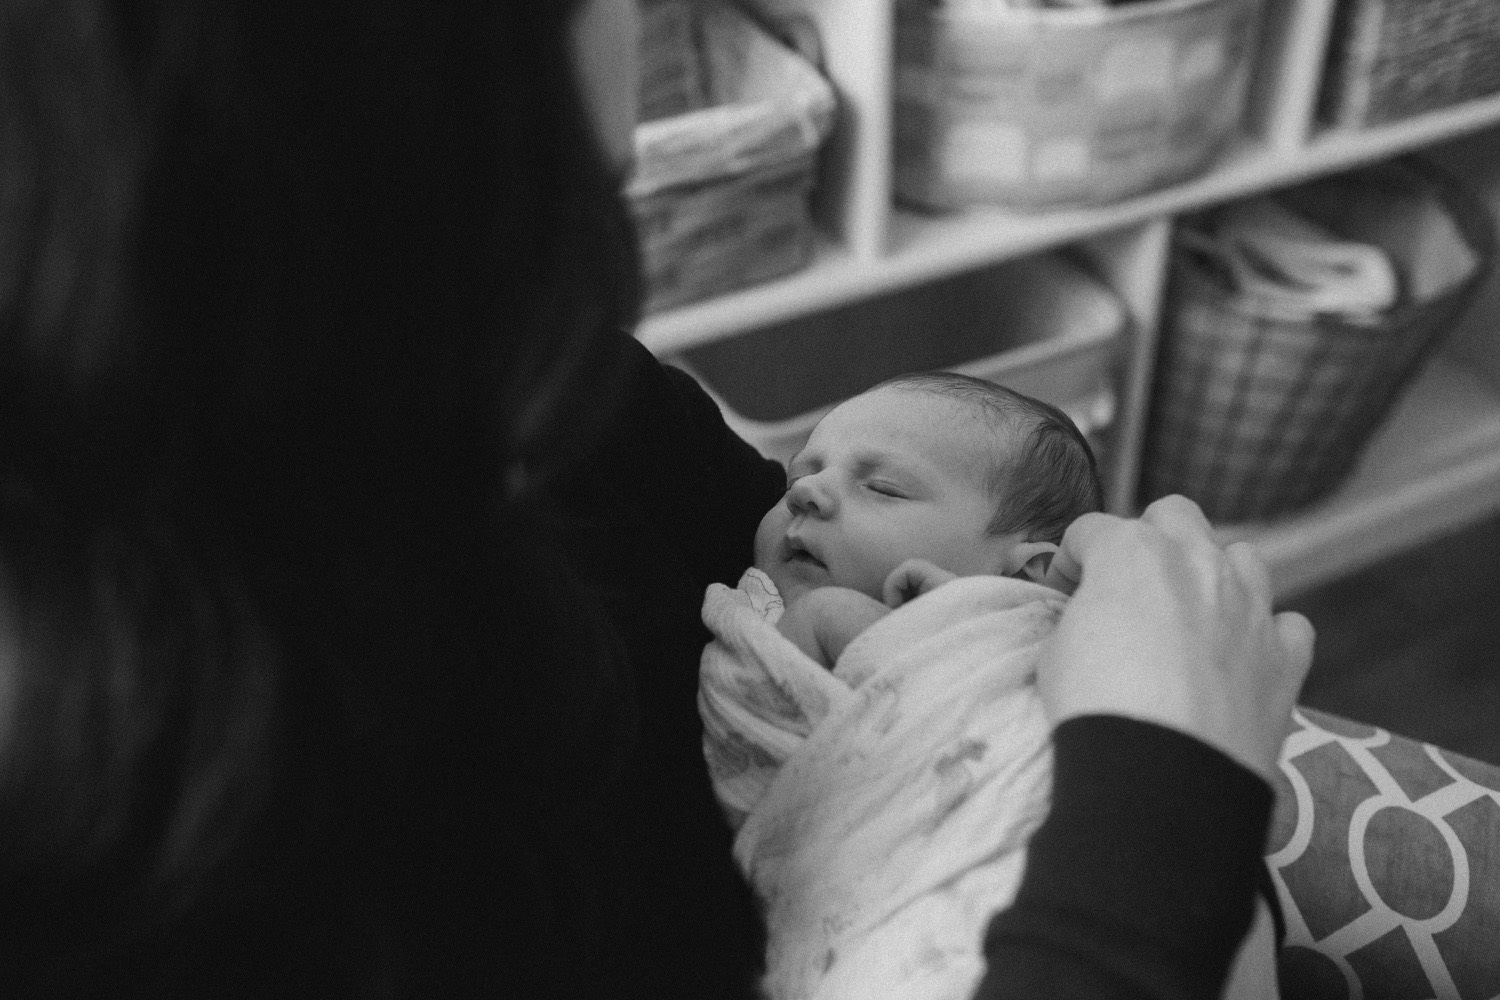 0004_16_10_12_rader_family_0002_newborn,_family_lifestyle,_Candid_photography,.jpg